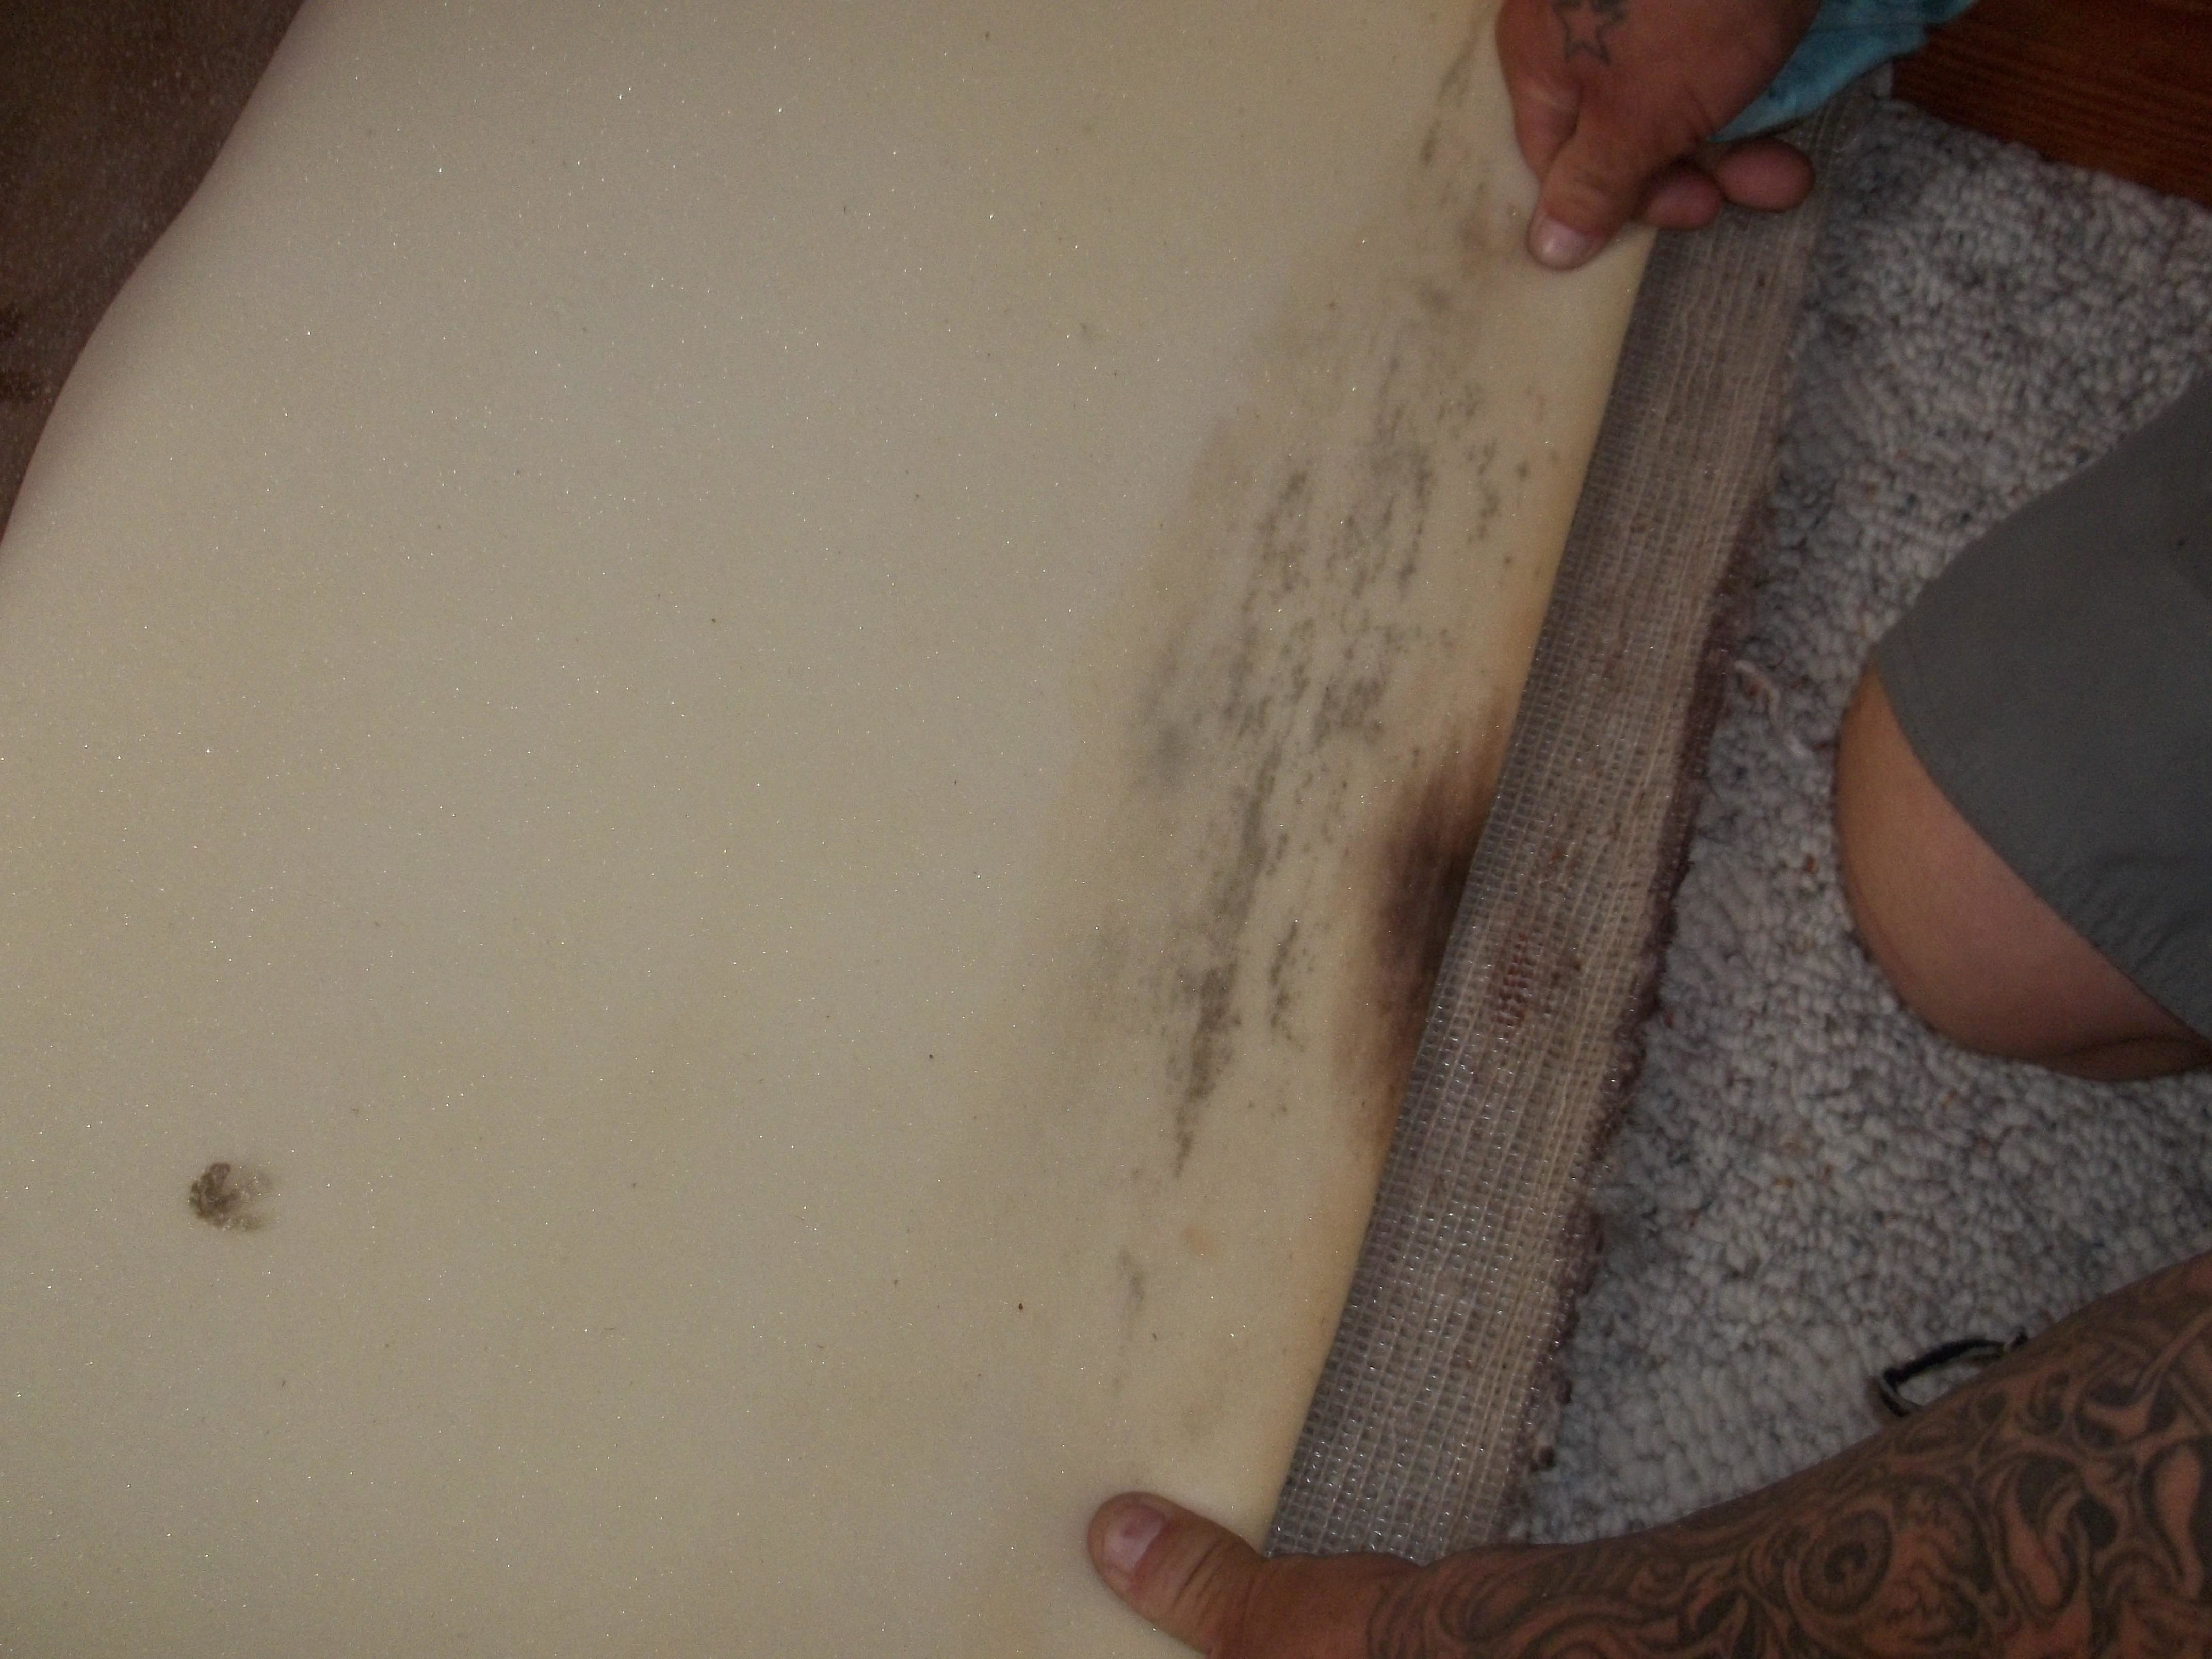 Anderson Restoration & Emergency Services - Water Damage & Mold Remediation image 7